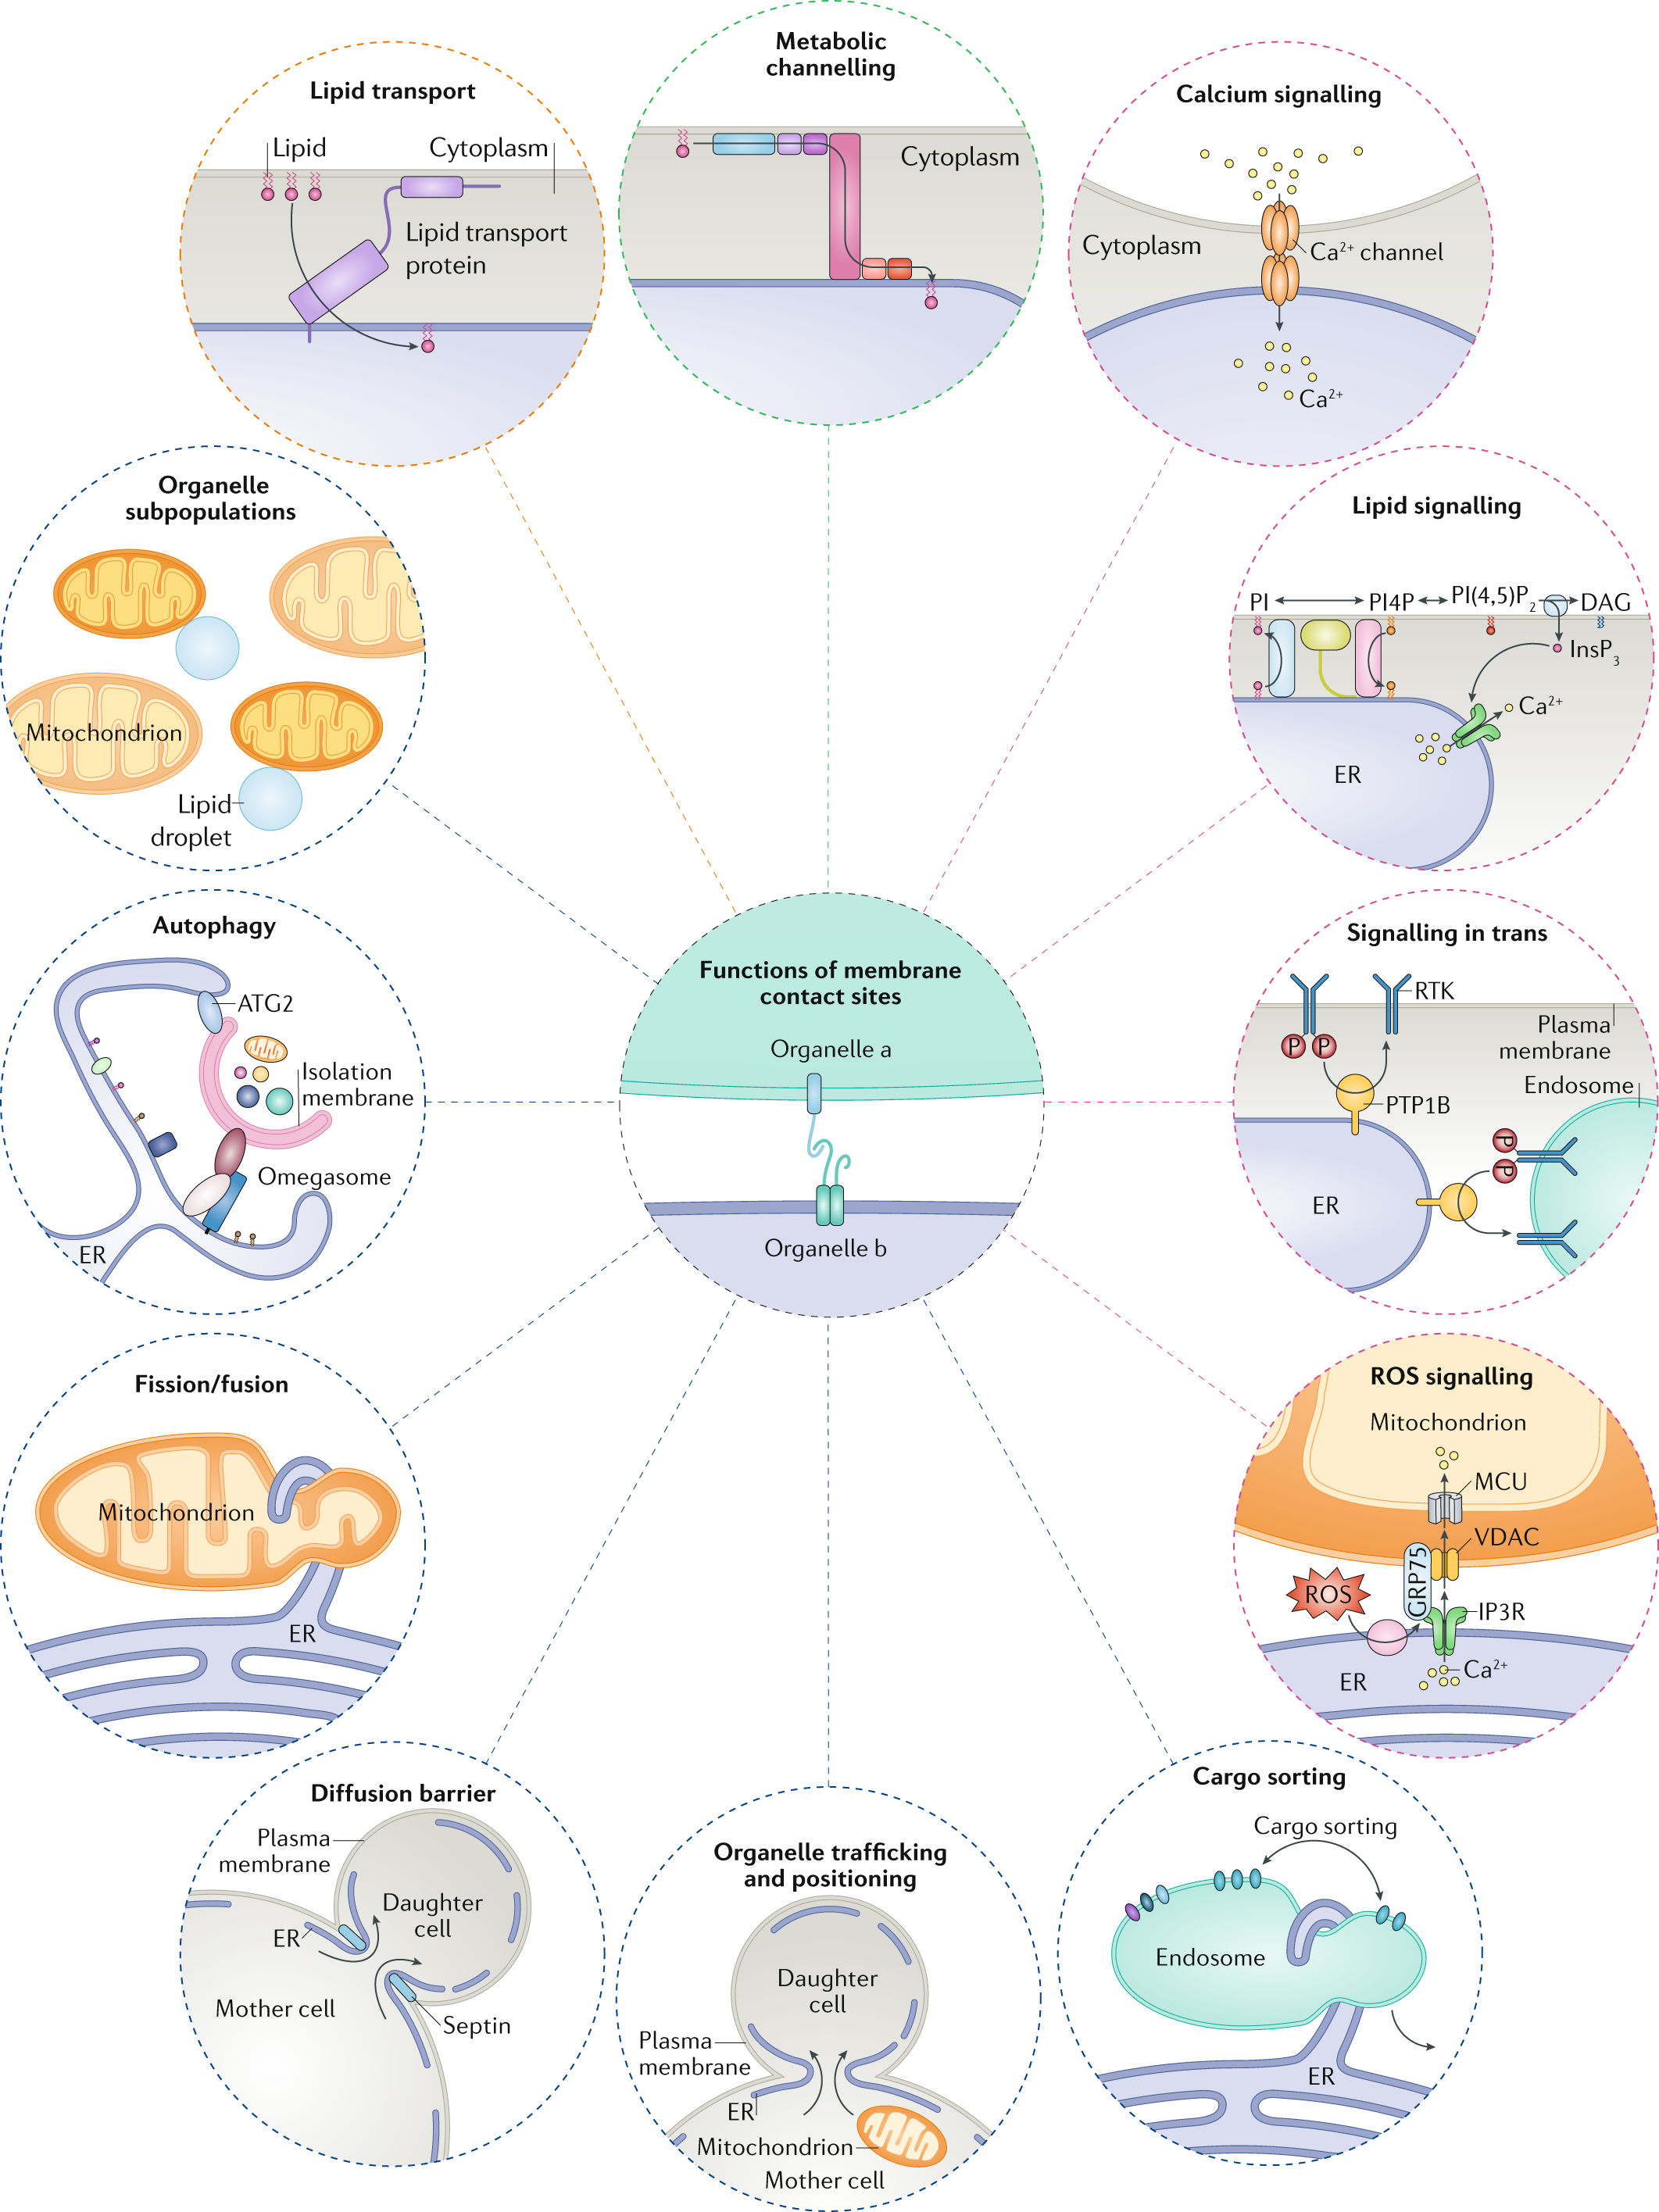 Adult Cd Universe the functional universe of membrane contact sites | nature